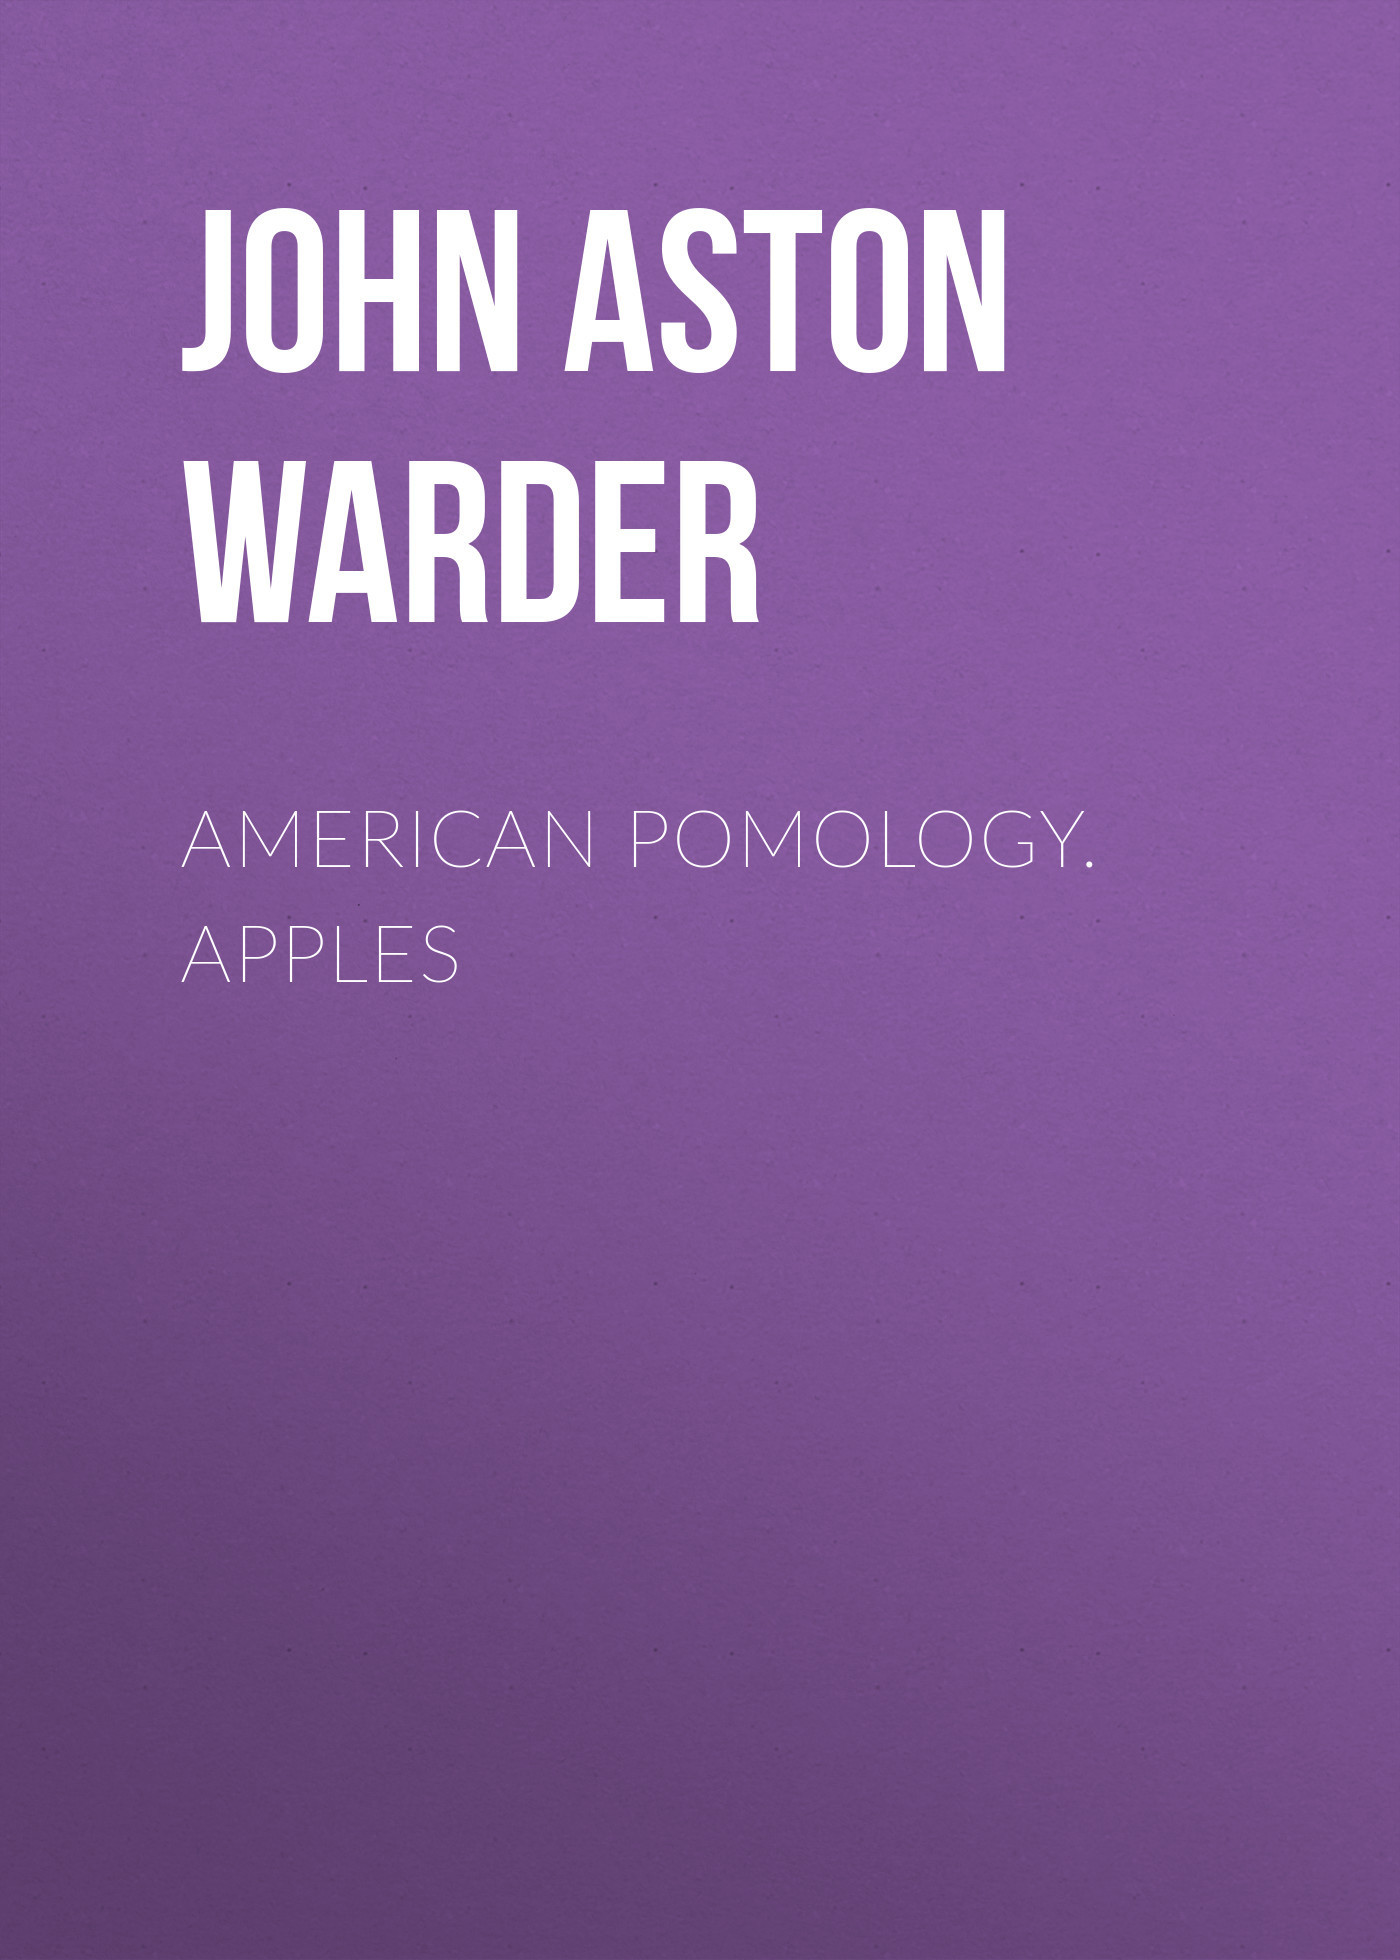 American Pomology. Apples